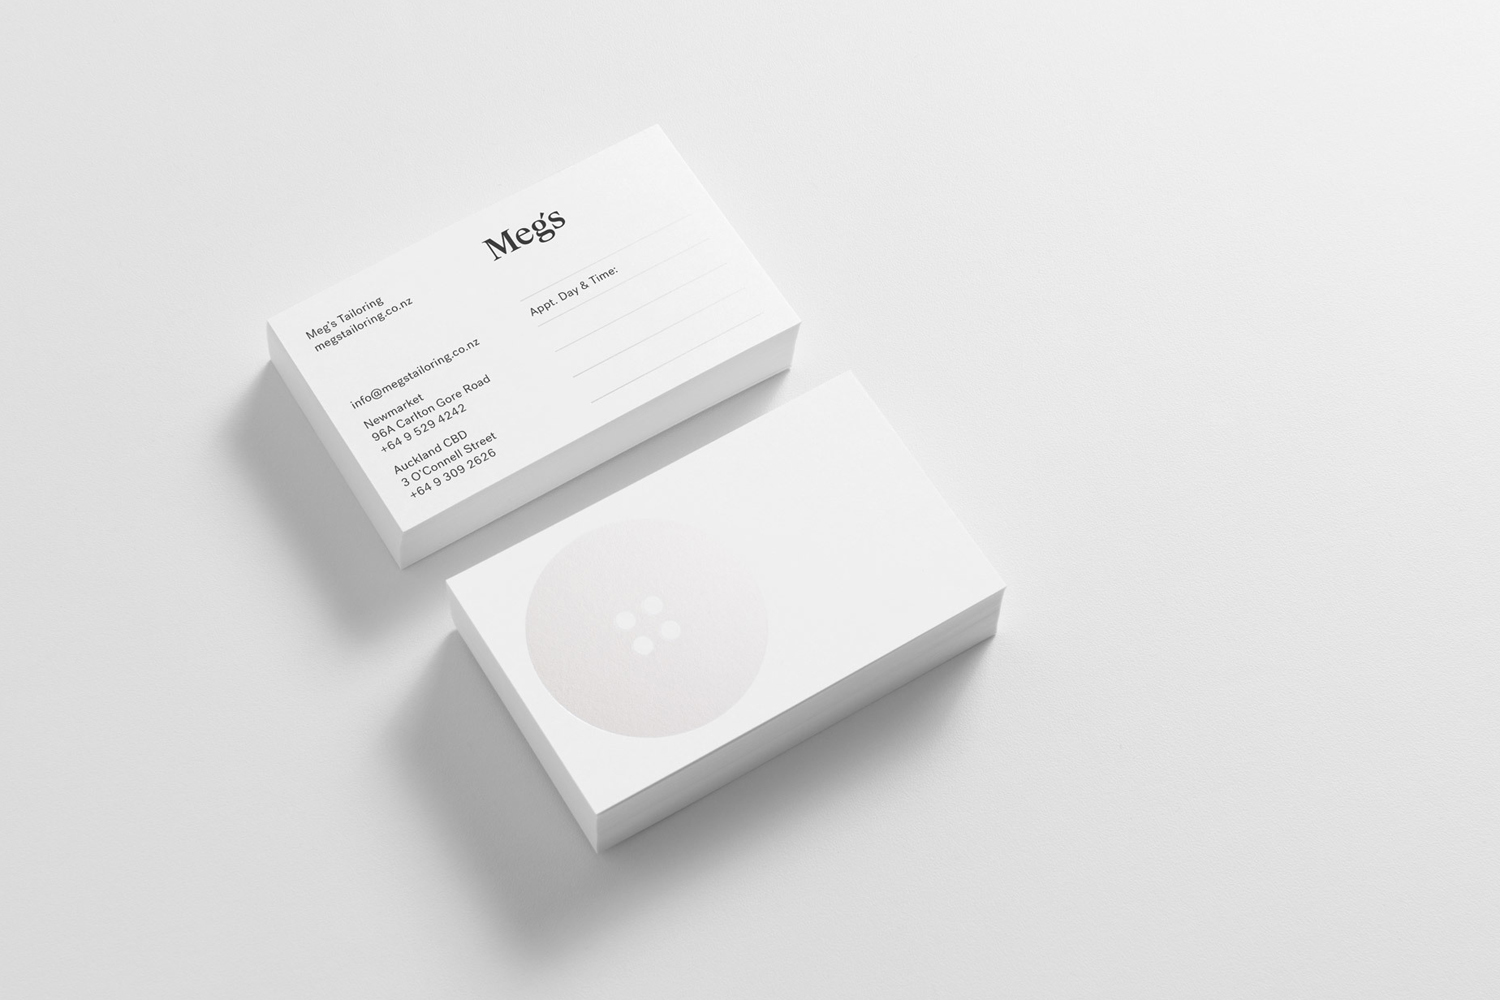 Brand identity and business cards by Auckland-based Studio South for New Zealand tailoring service Meg's